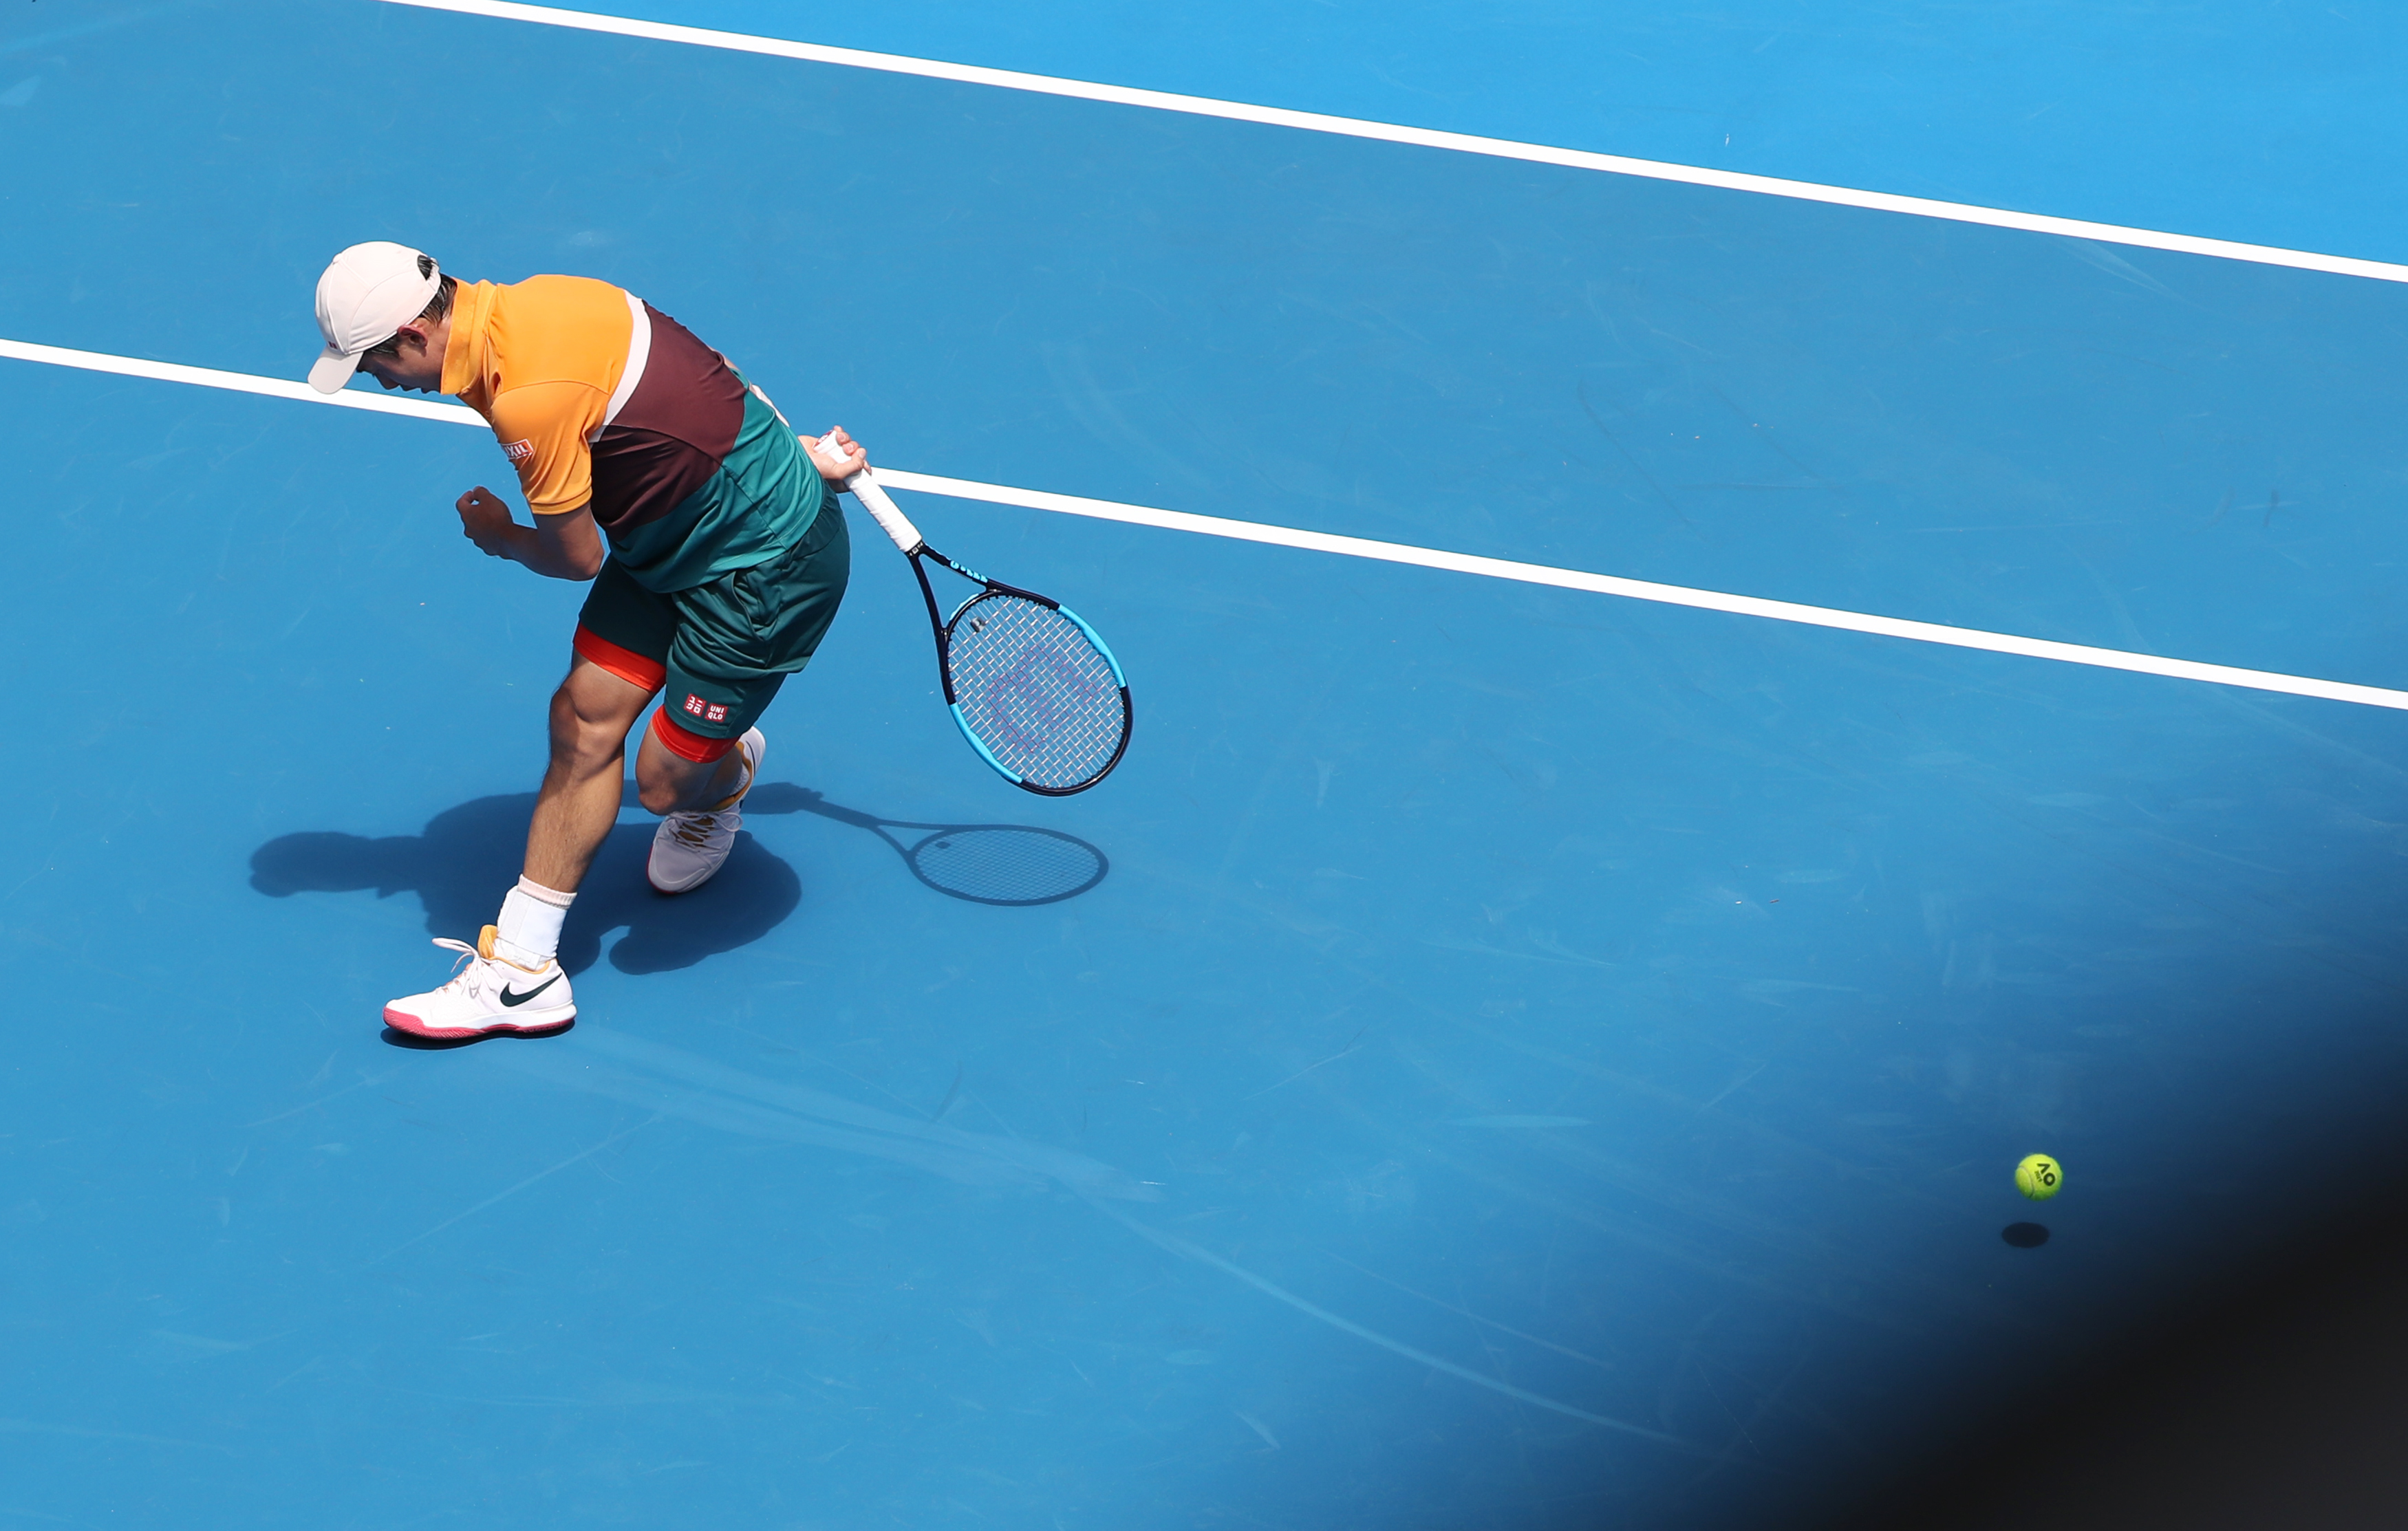 Why tennis players make grunting sounds while playing?